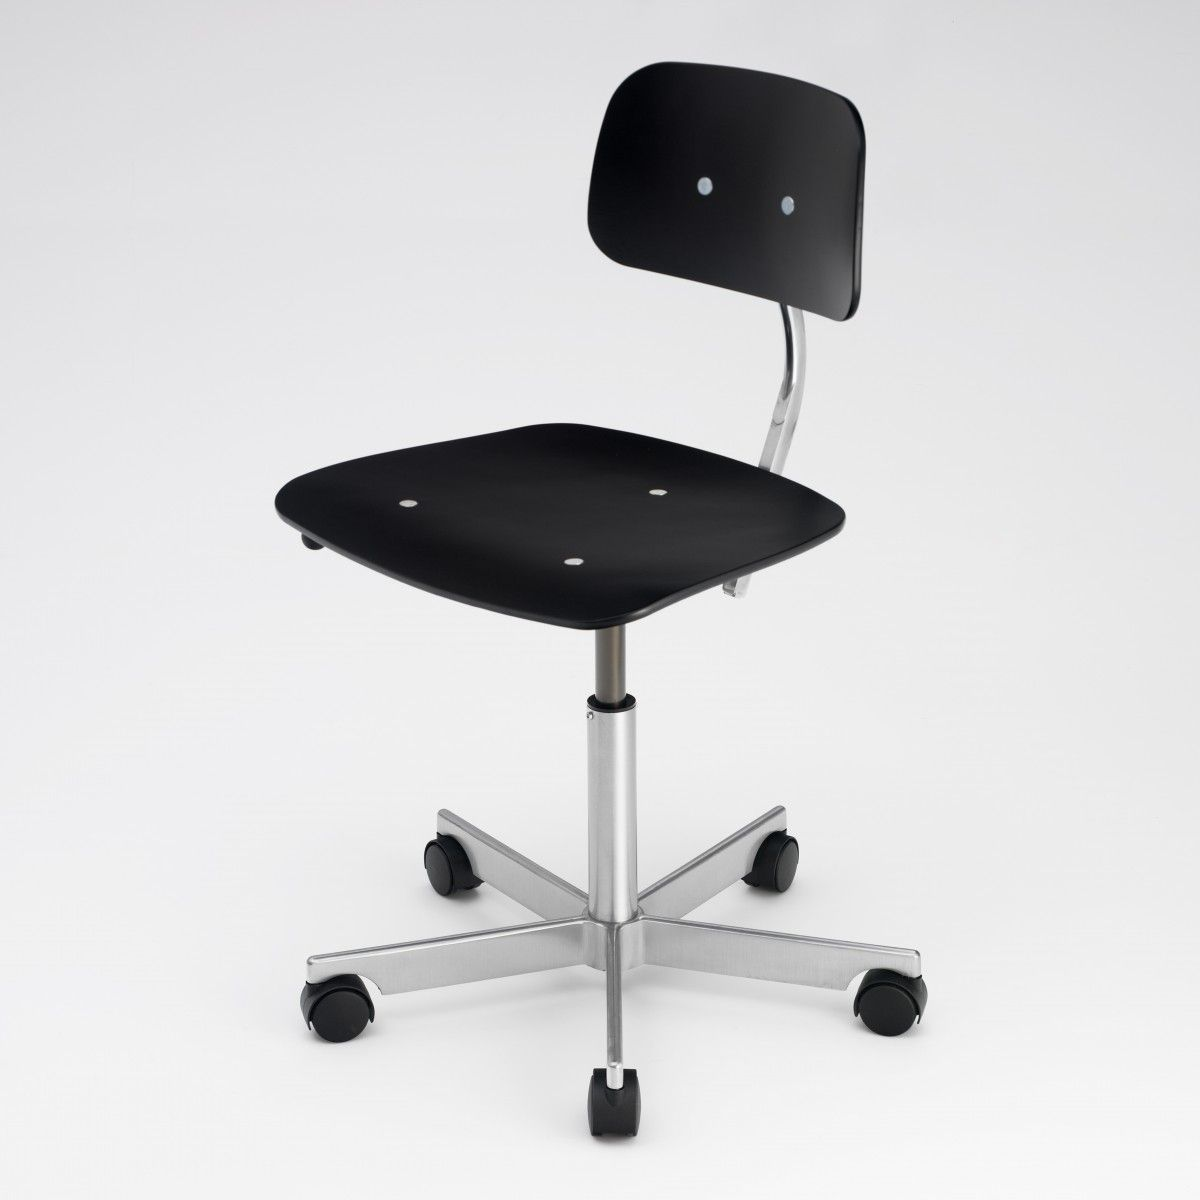 google office chairs. Kevi Chair - Google Search Office Chairs